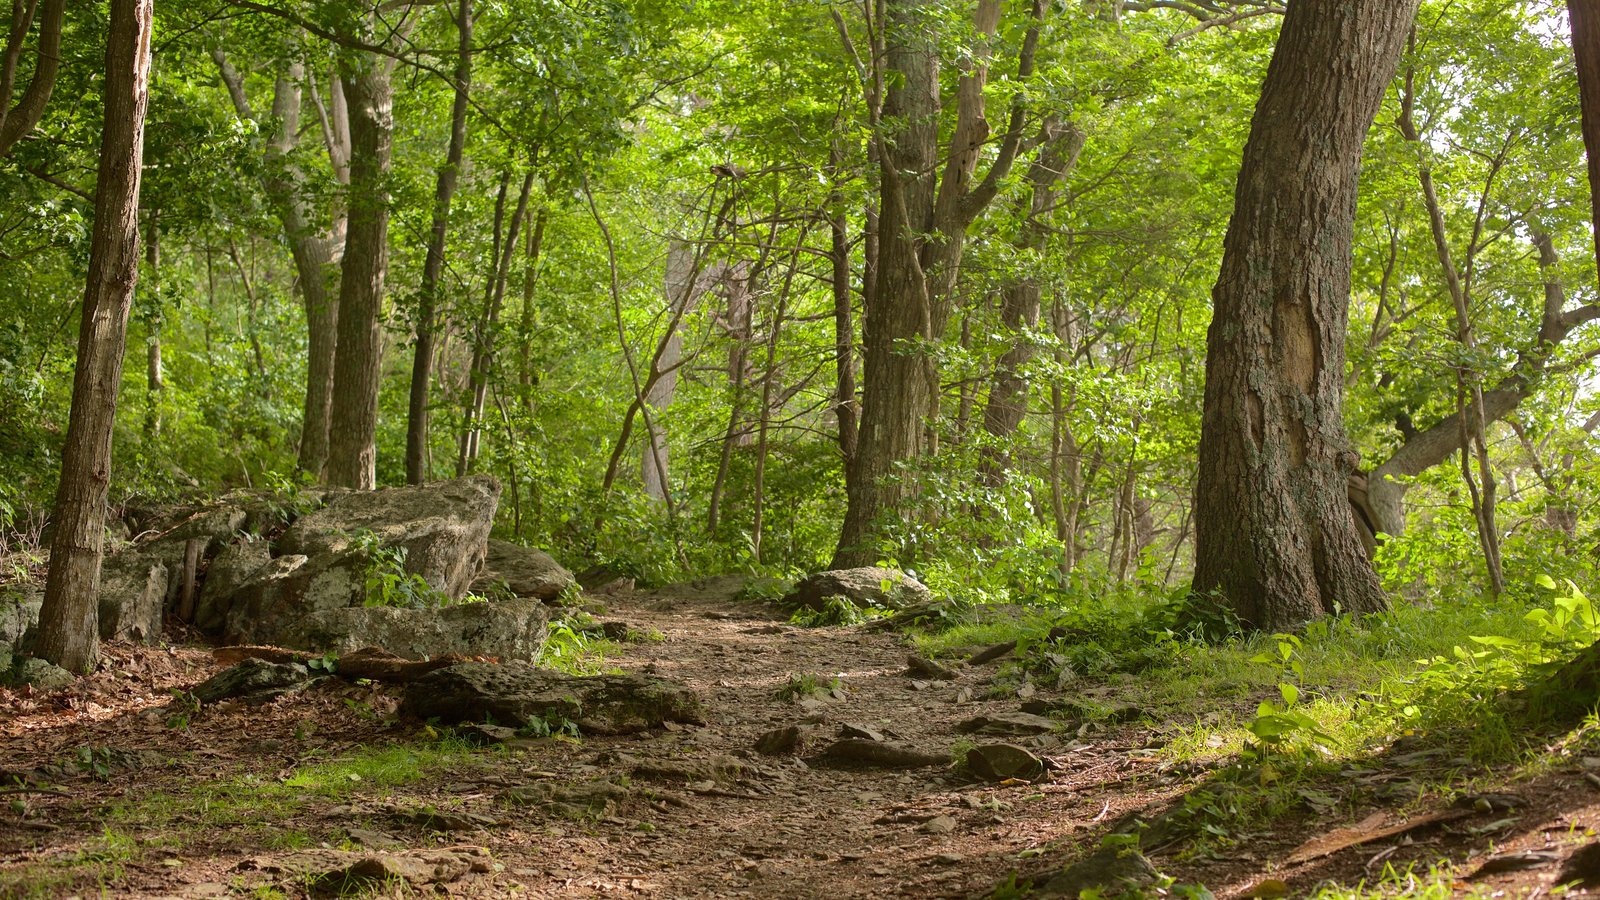 Shenandoah National Park which includes forests and tranquil scenes